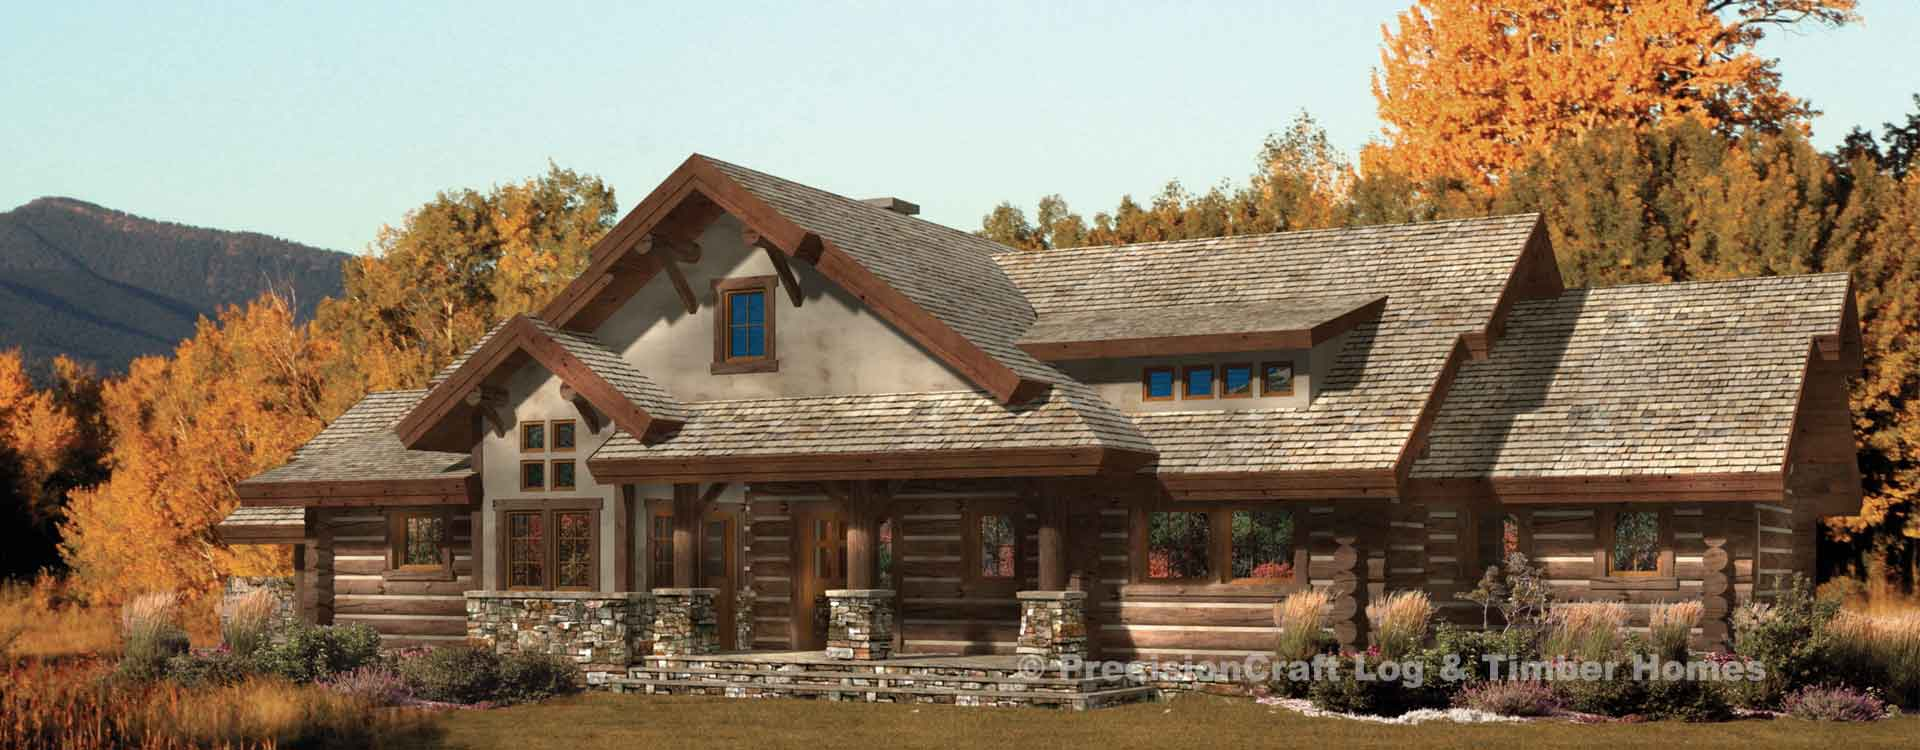 Hidden Creek Craftsman Log Home Plan